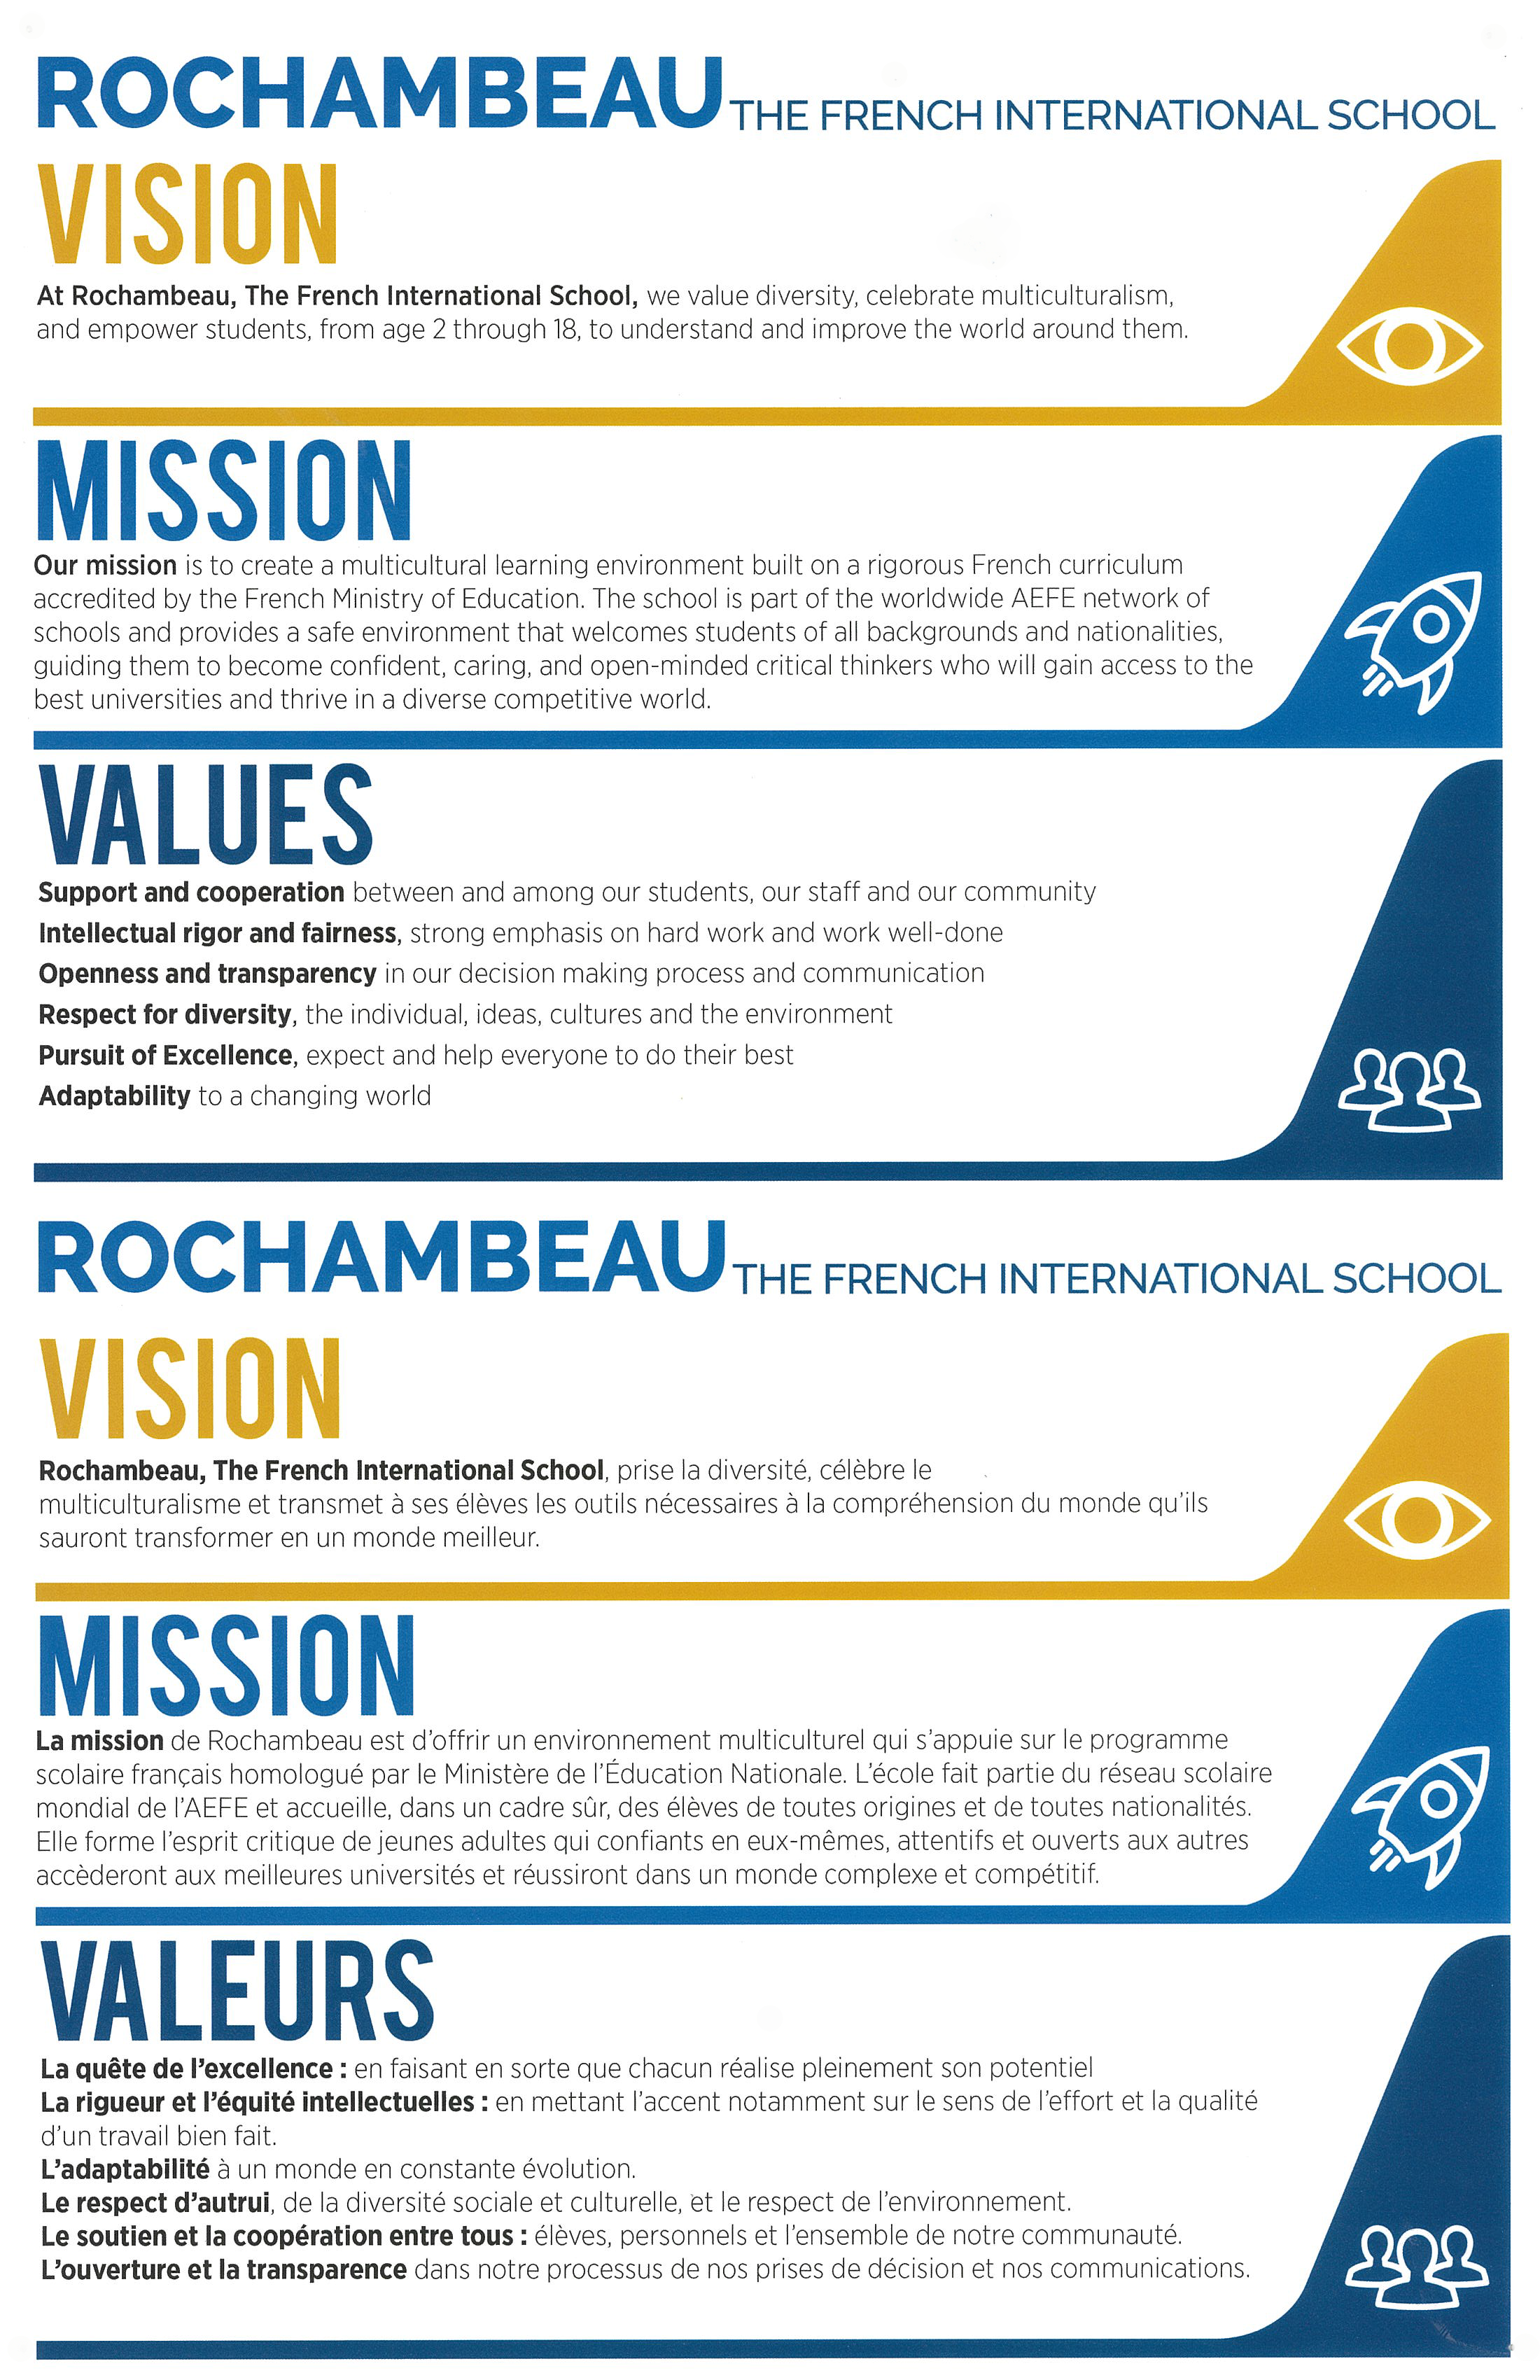 rochambeau french international school mission vision